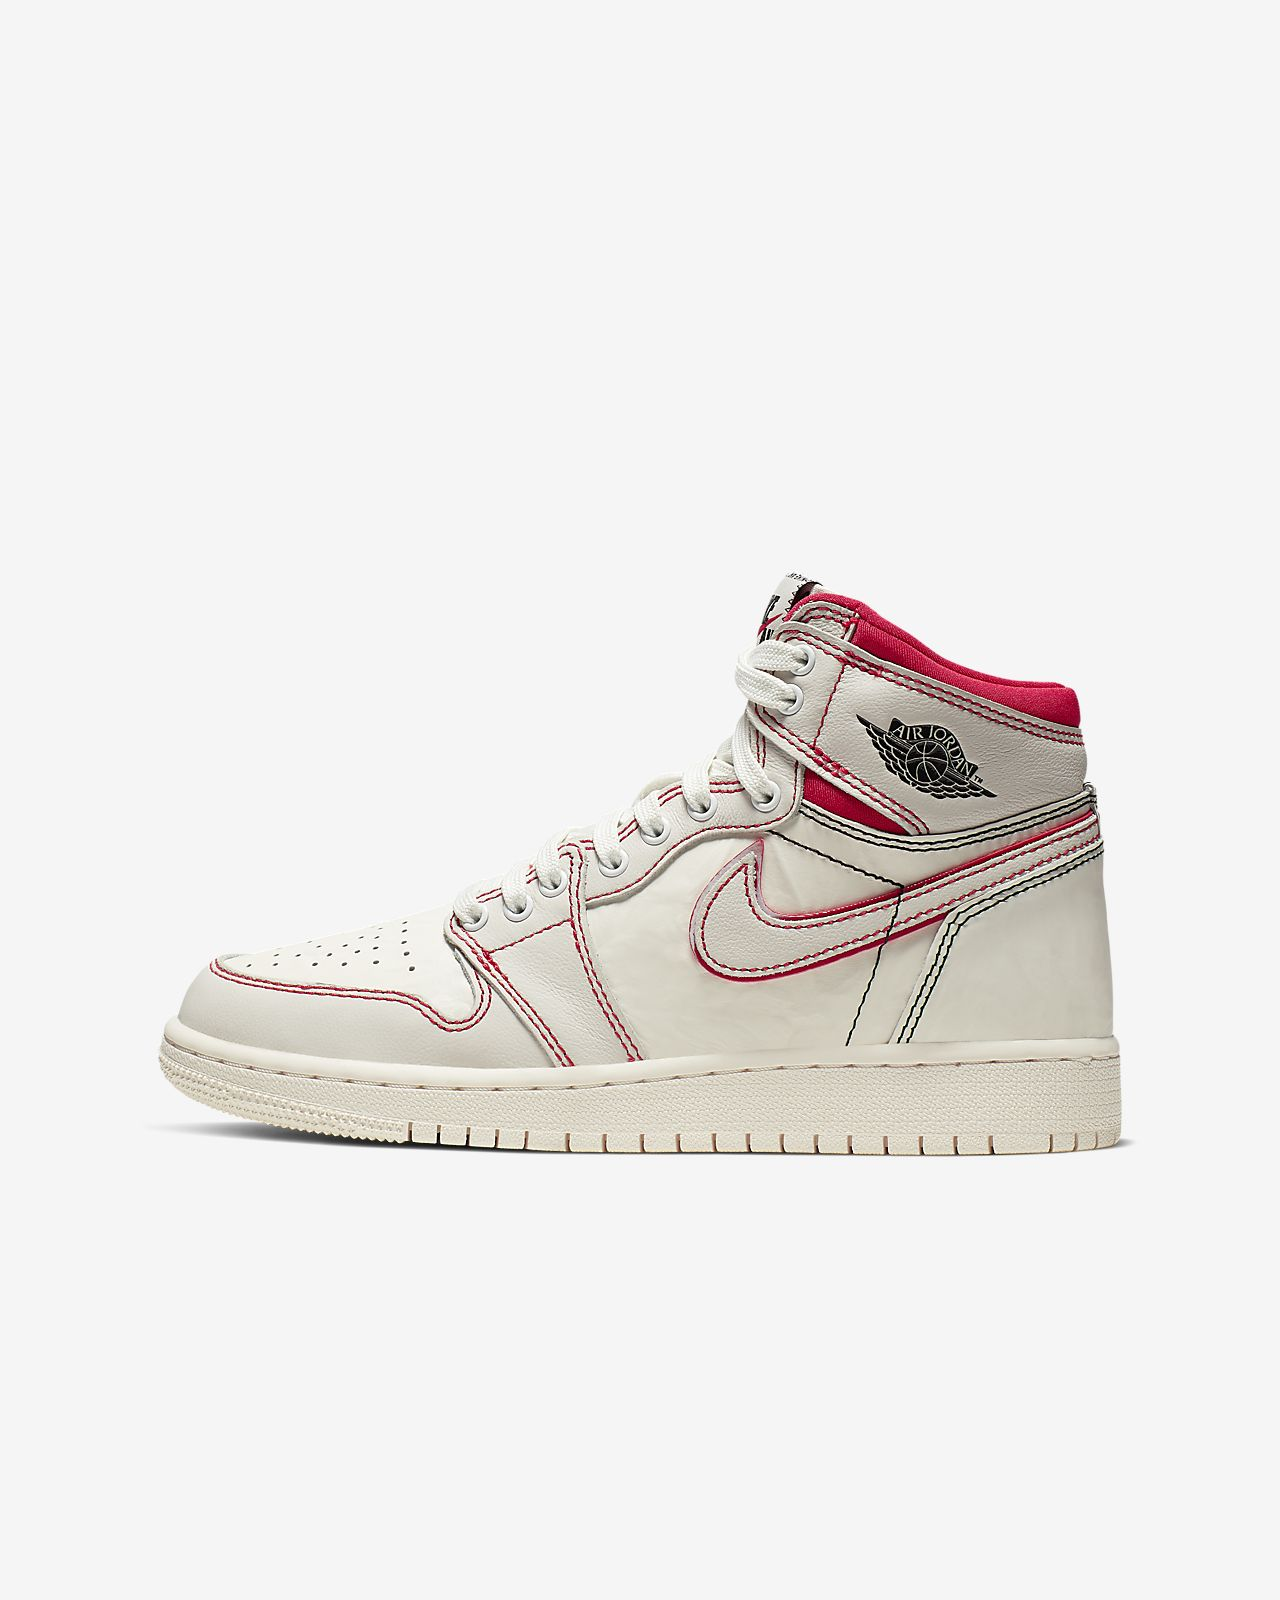 0c79a182c8f1 Air Jordan 1 Retro High OG Boys  Shoe. Nike.com